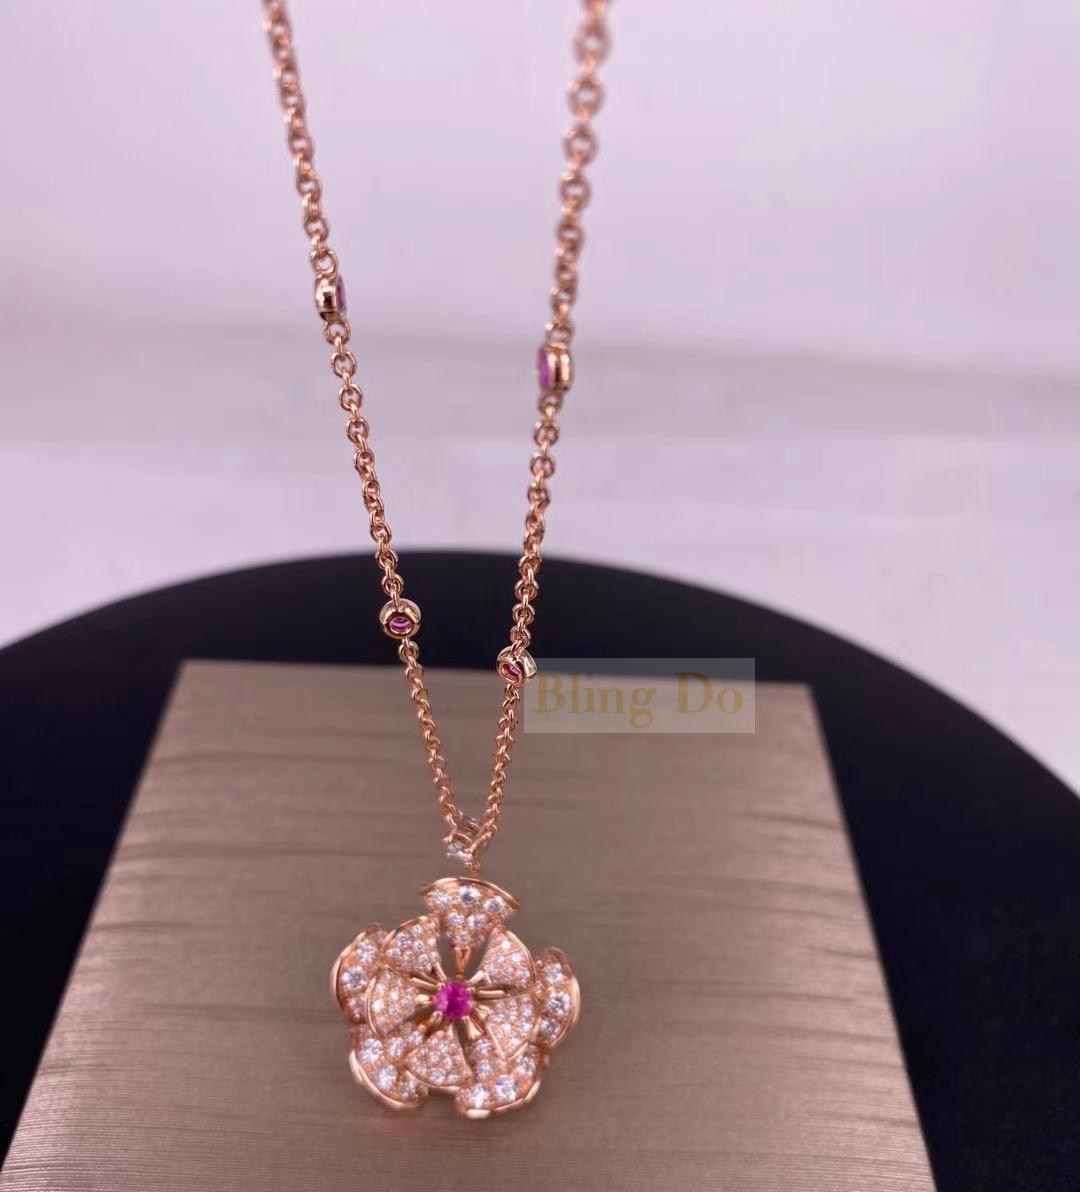 Bvlgari DIVAS' DREAM Necklace in 18KT Rose Gold with Gemstones